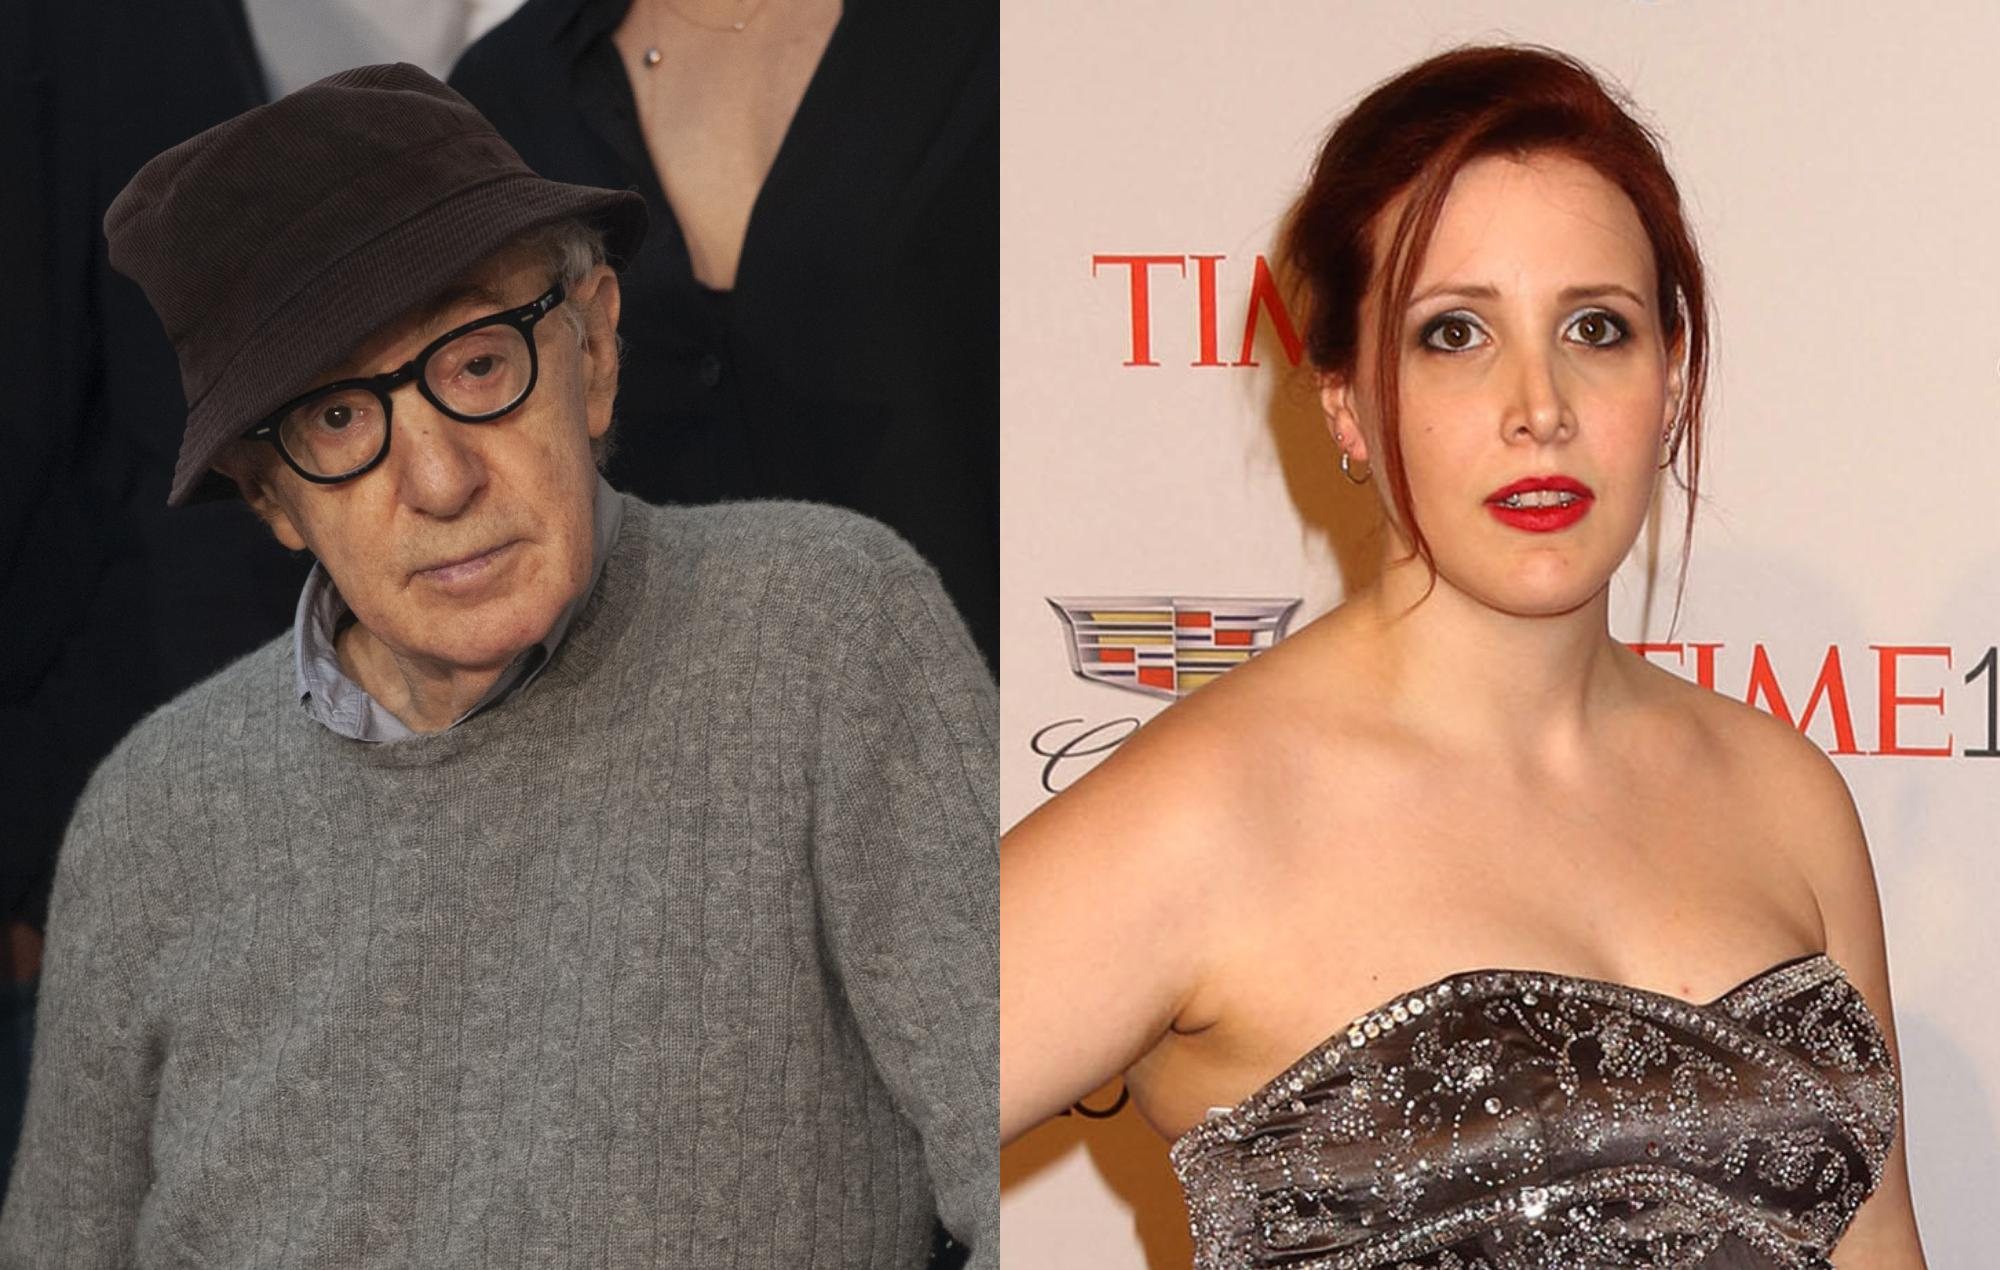 'Manhattan' star says Woody Allen film wouldn't be released today